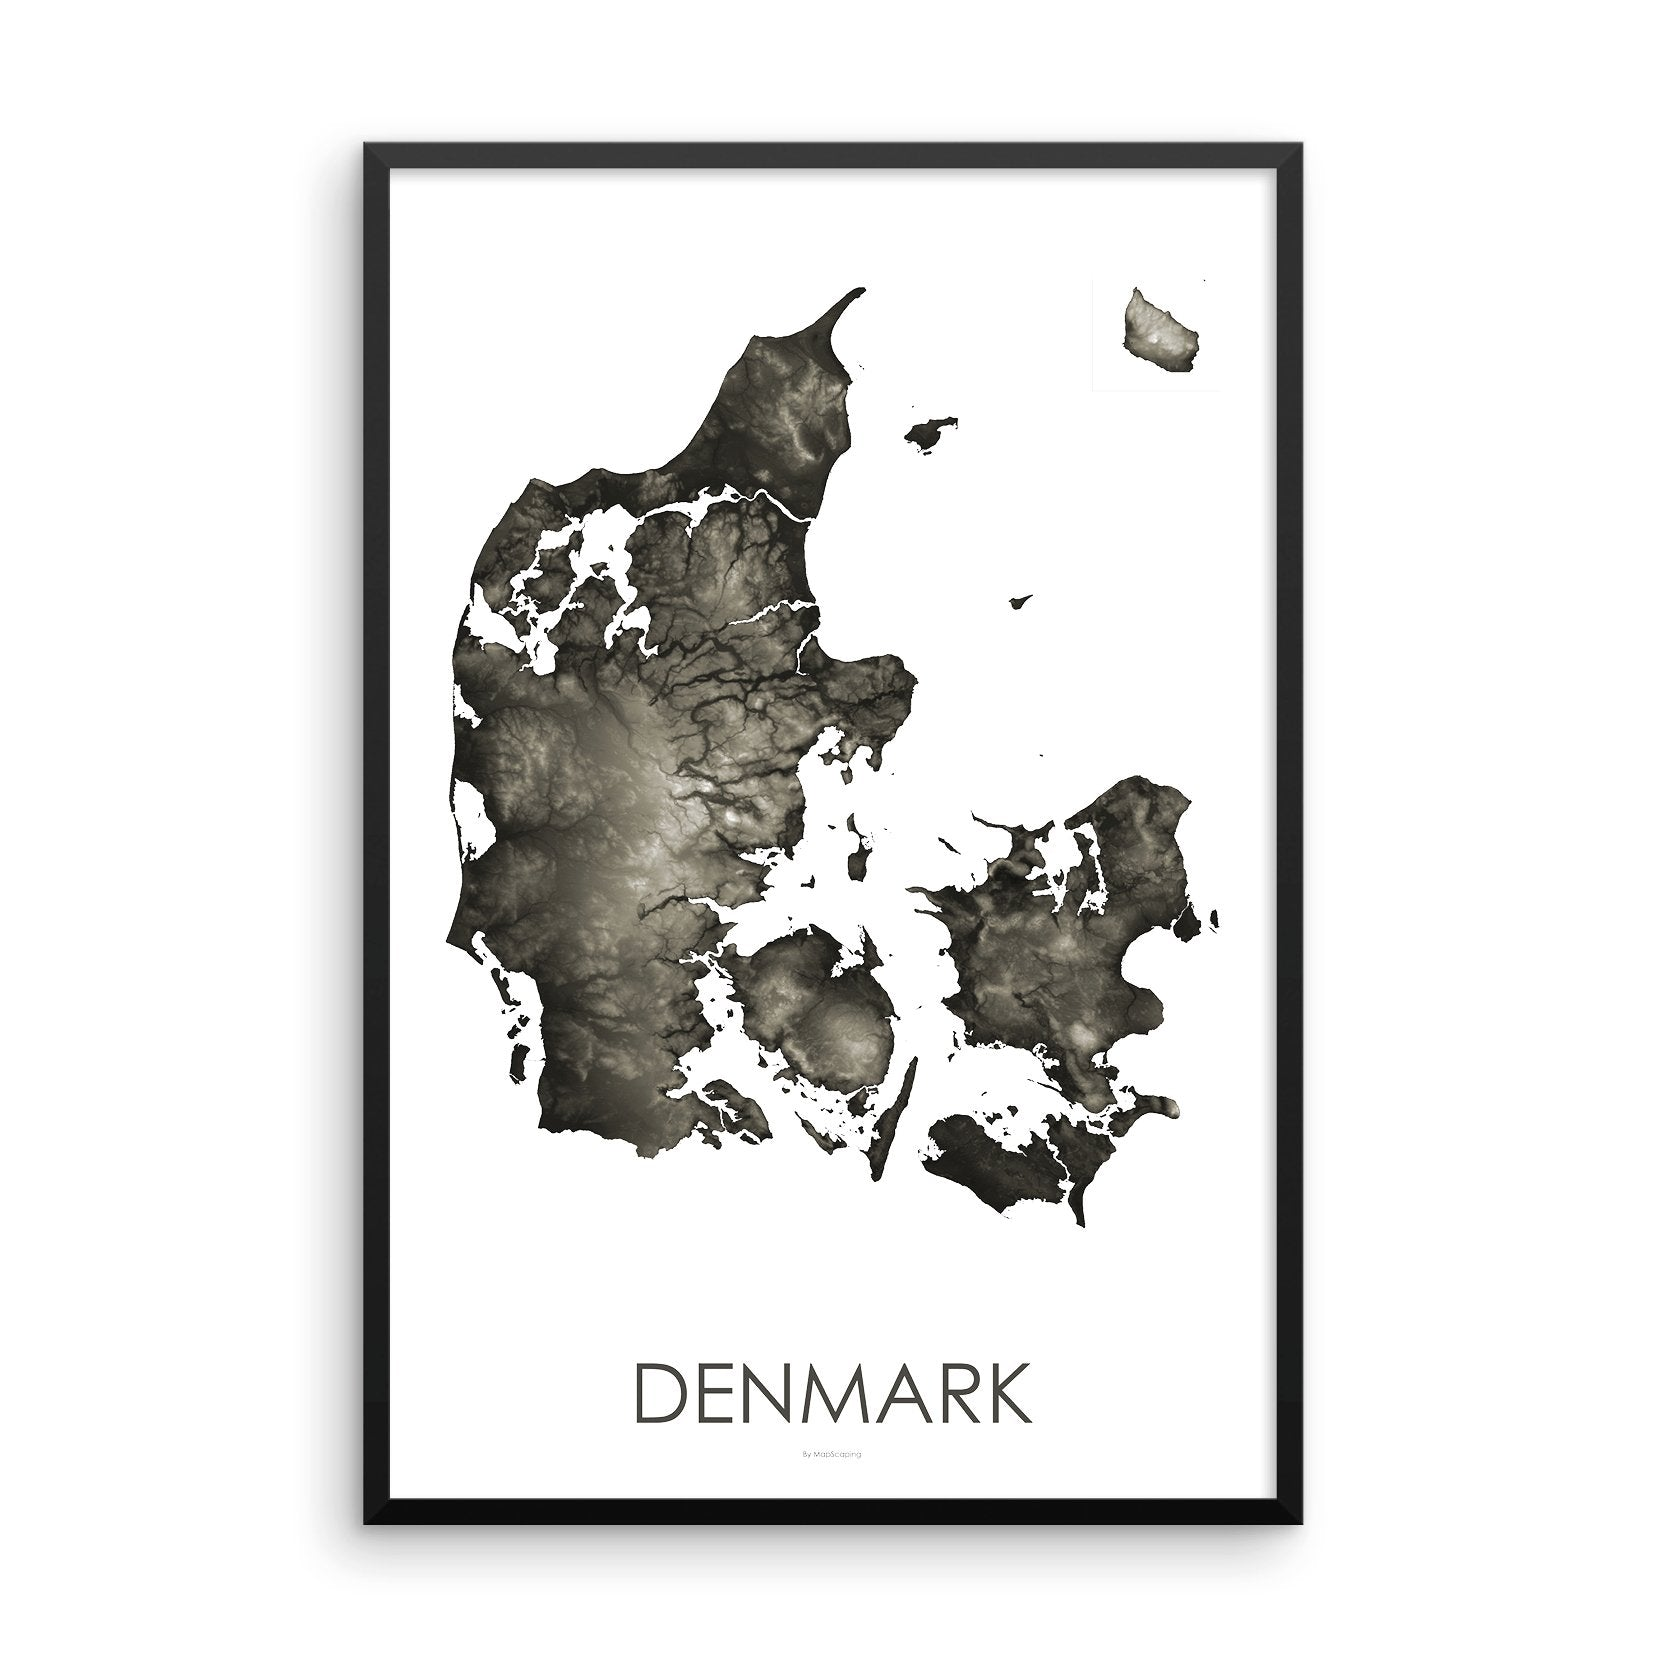 Framed gray poster map of Denmark and the danish islands, detailed map print showing the mountains of Denmark's landscape.